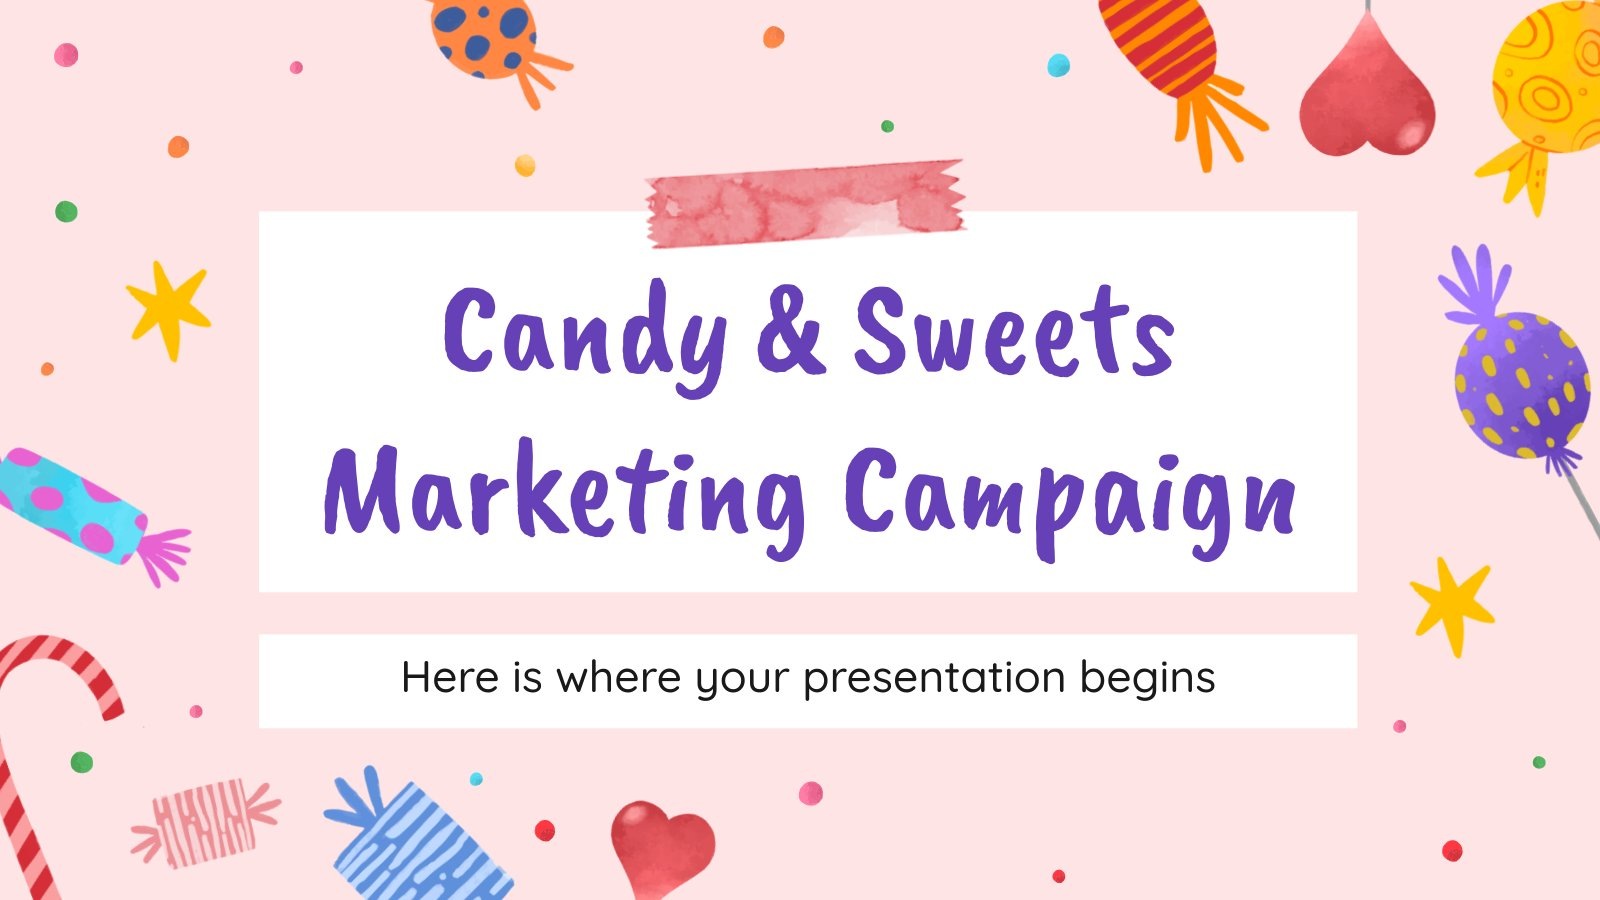 Candy & Sweets Marketing Campaign presentation template